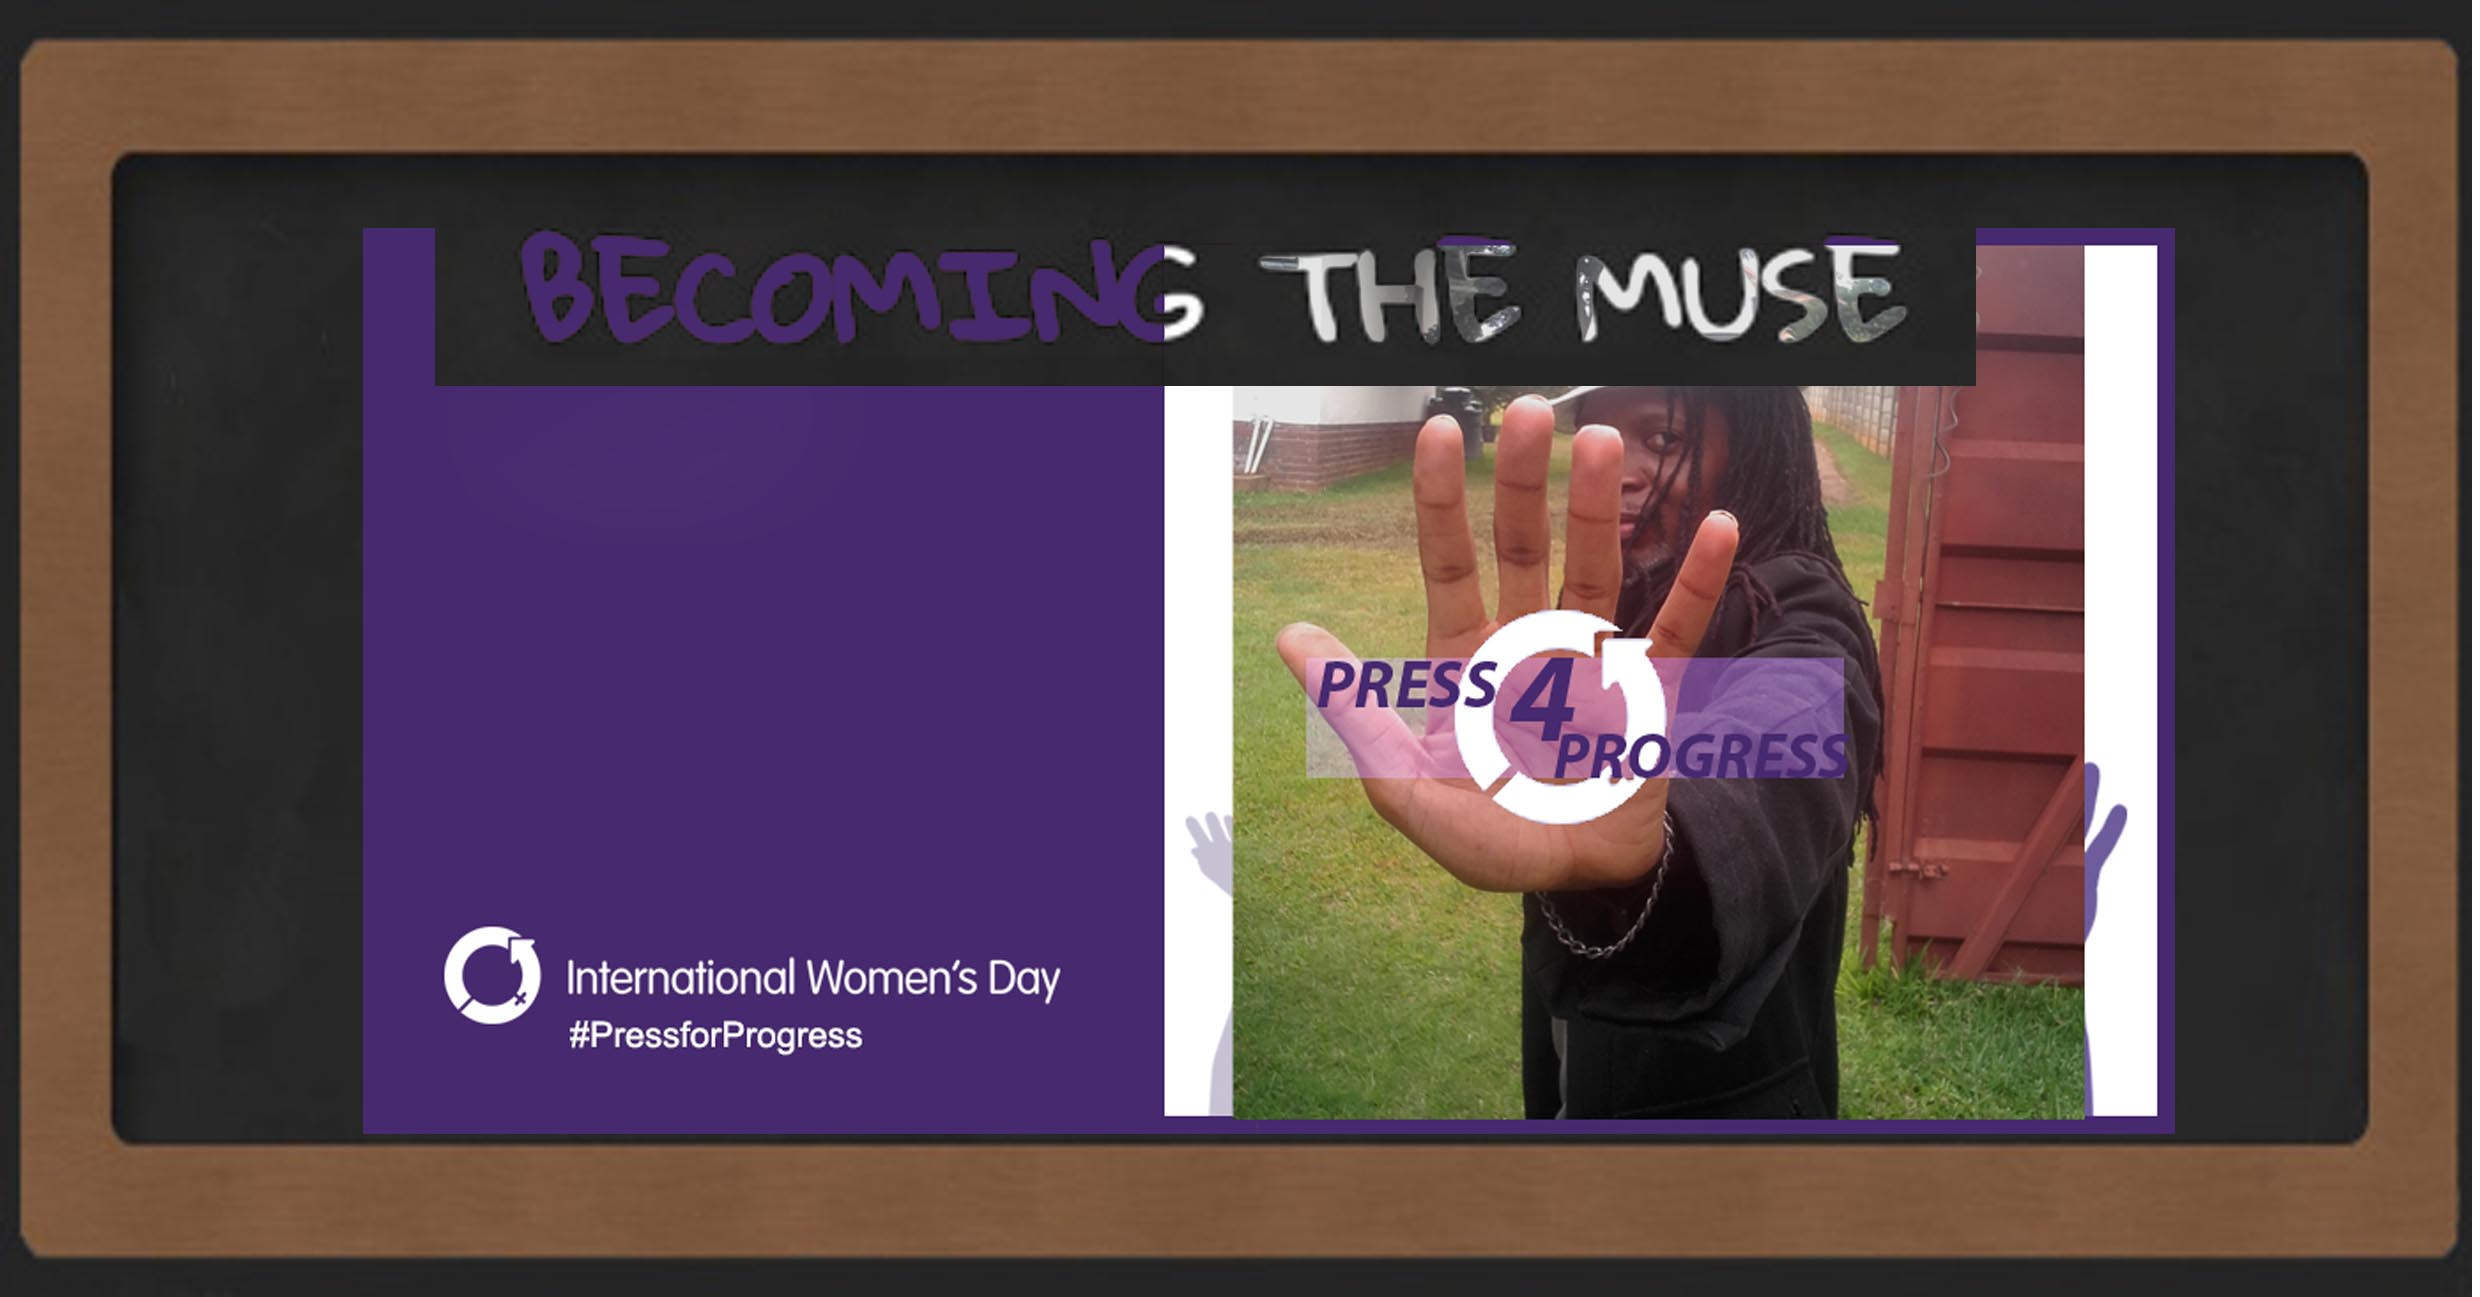 Becoming the muse #PressForProgress